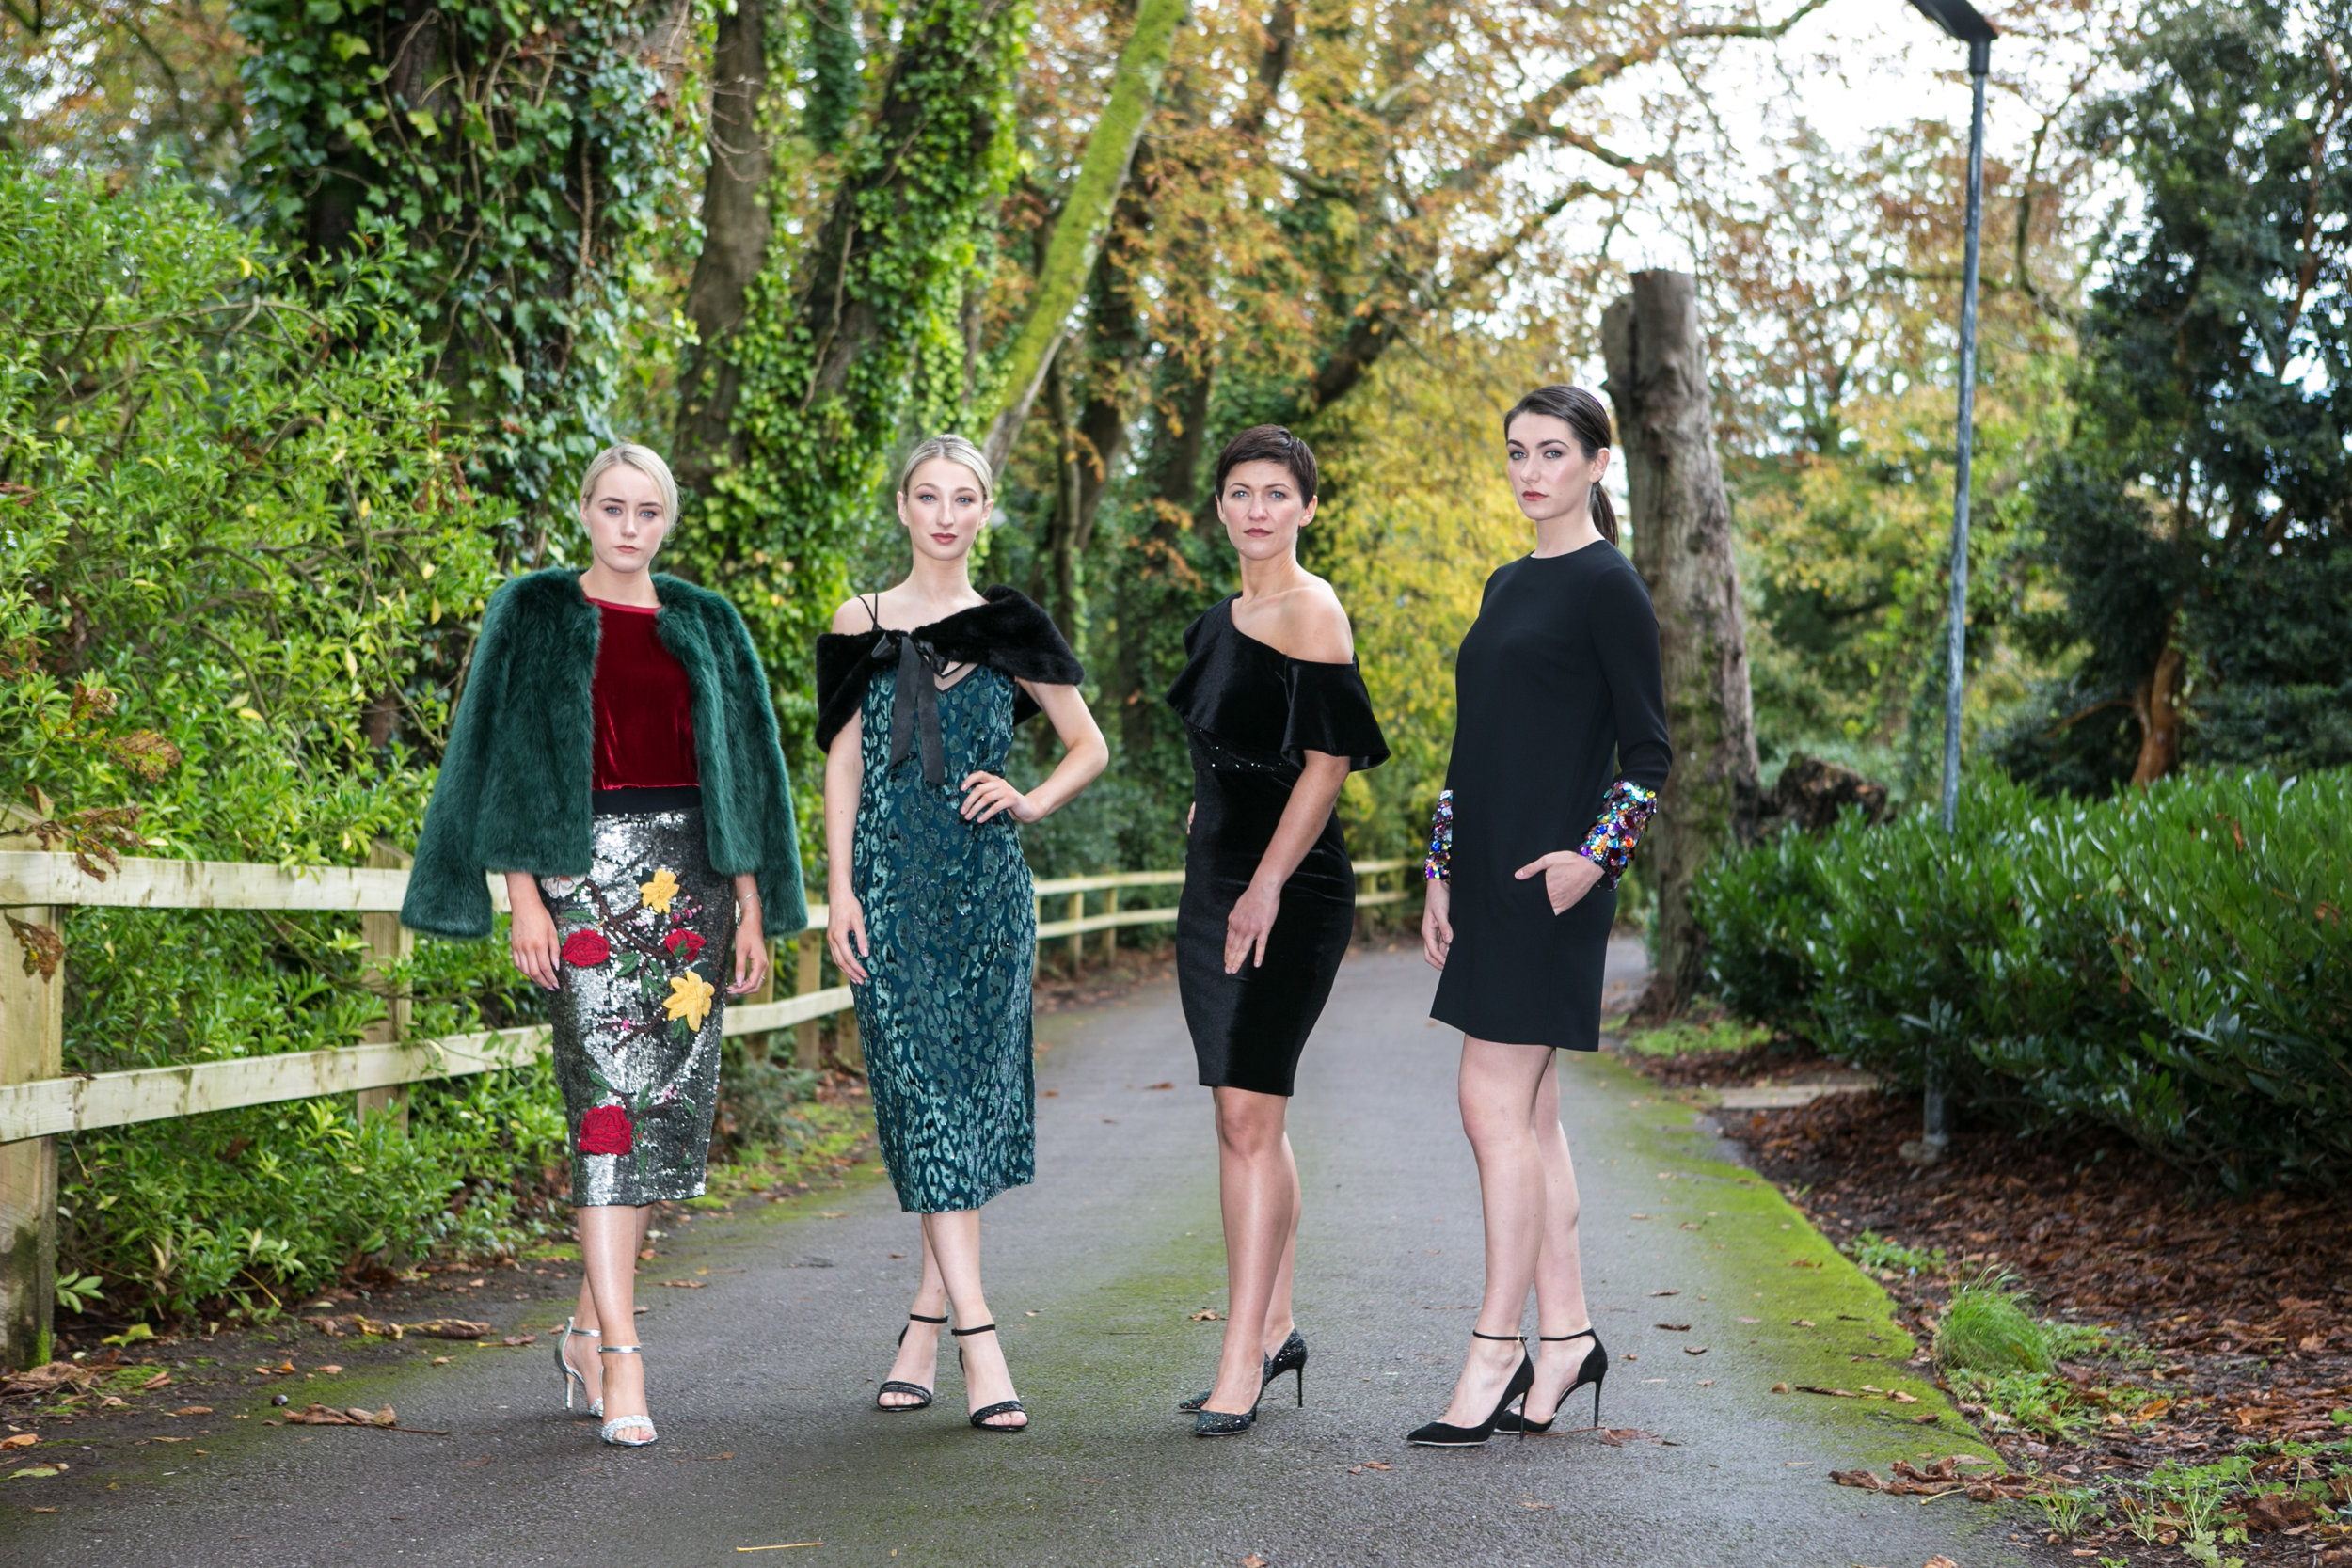 Aoife, Isabelle, Ania and Ciara modelled designs by; Alice & Olivia, Boss, Armani, Victoria Beckham and Jimmy Choo from Brown Thomas at the Annual Aer Lingus Autumn Lunch in aid of Cork ARC Cancer Support House